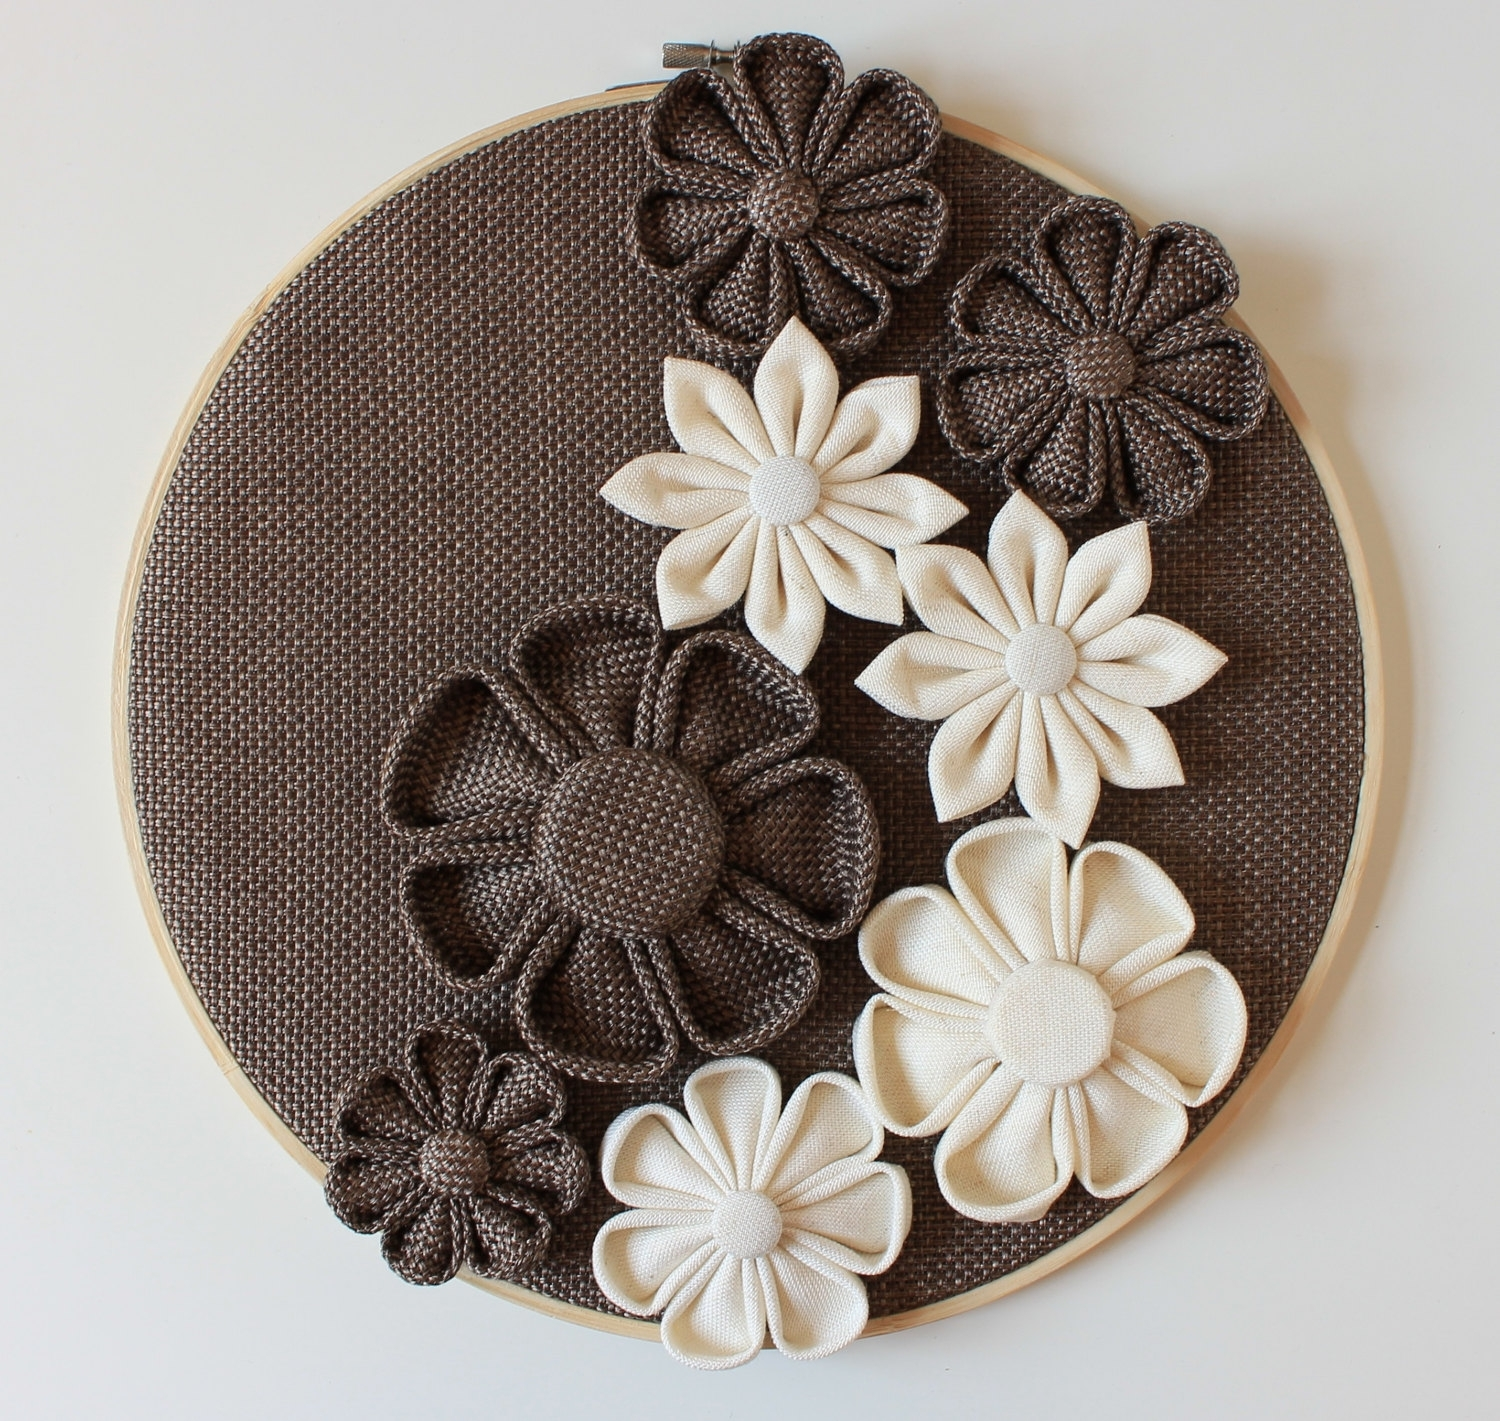 3d Wall Decor Wall Flowers Home Decor Wallneschdecoration With Regard To Recent Fabric Flower Wall Art (Gallery 10 of 15)